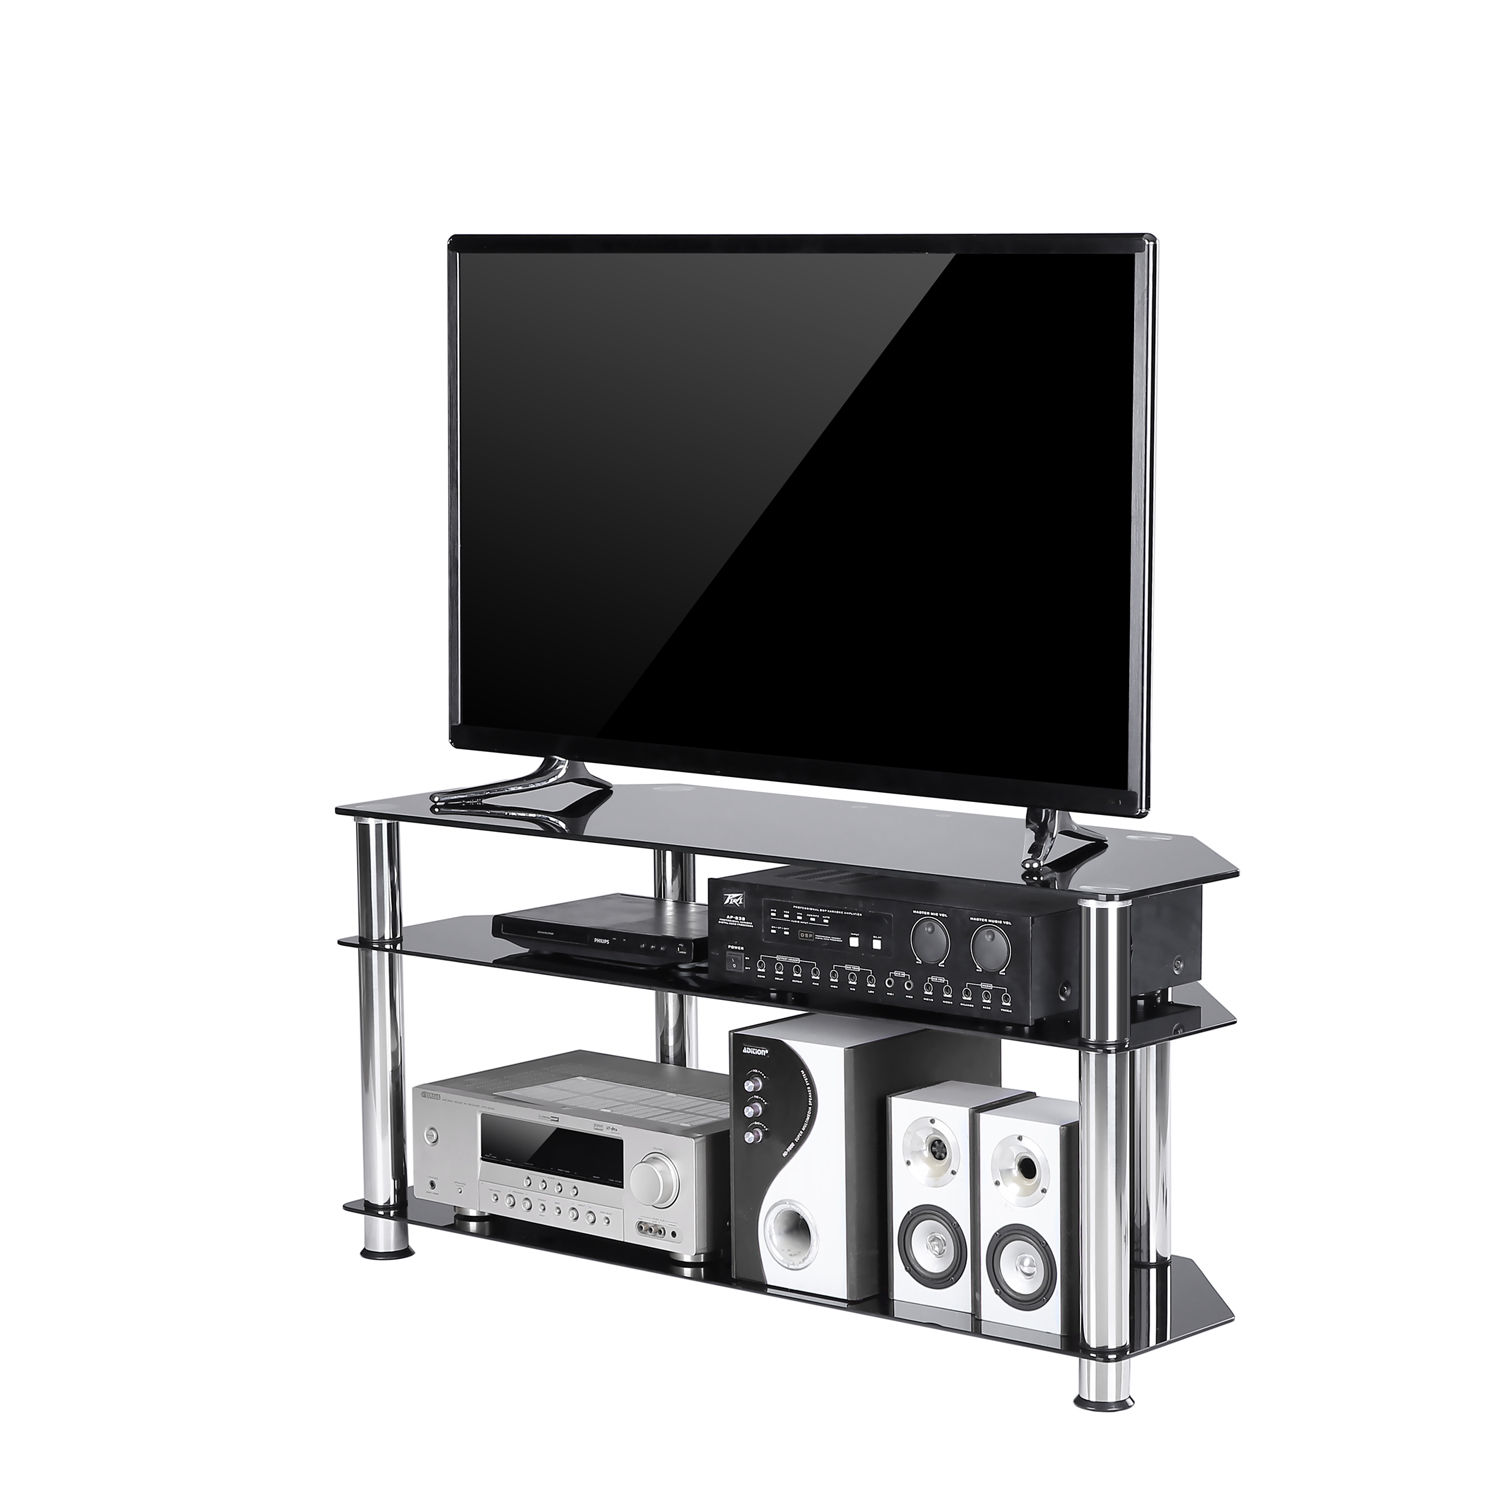 TAVR Furniture Black Tempered Glass Corner TV Stand Cable Management Suit for up to 50''inch LED, LED OLED TVs,Chrome Legs TS2002